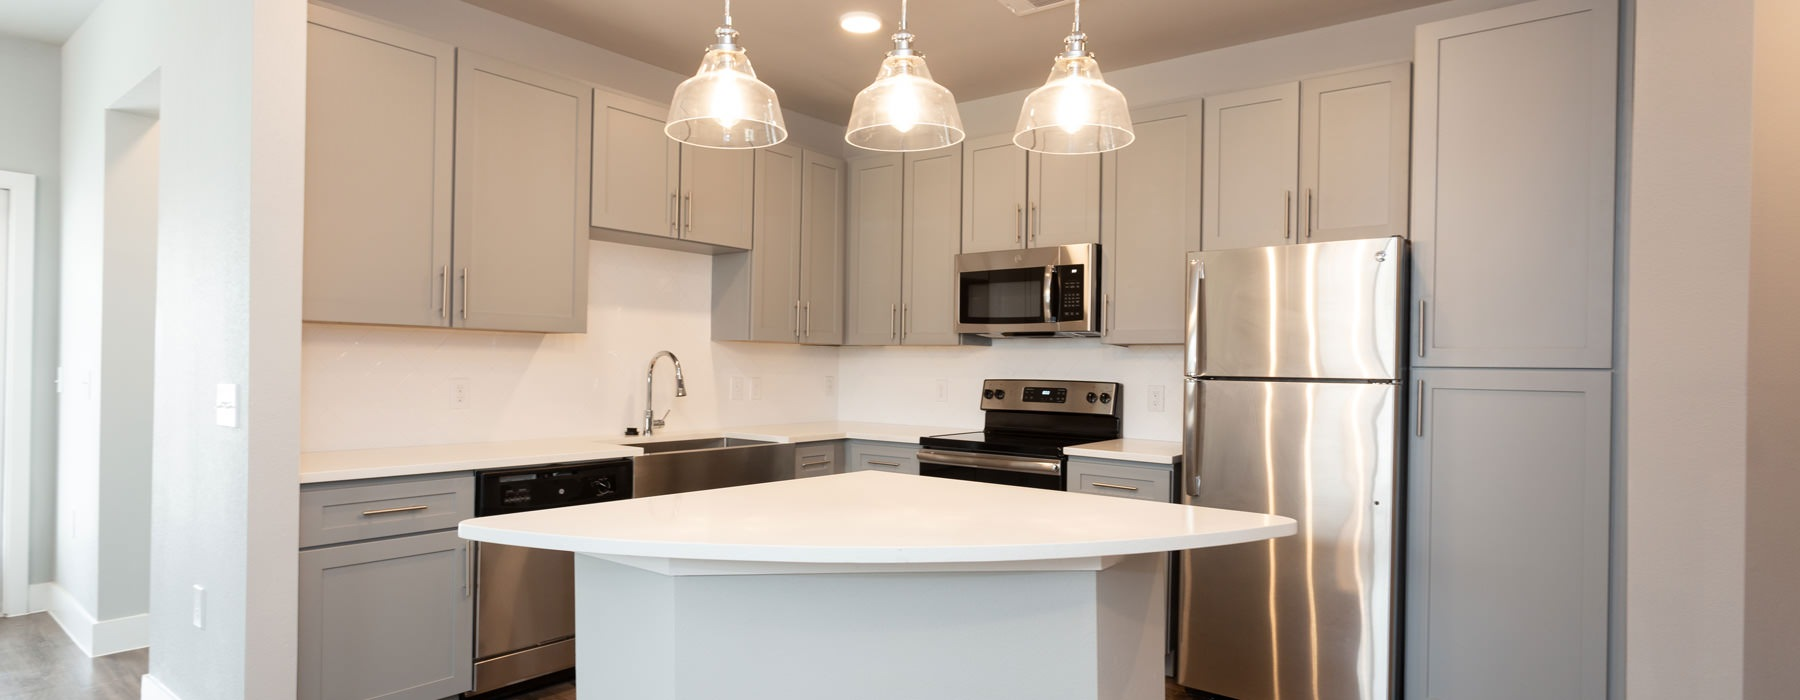 bright kitchen with pendant lighting over kitchen island